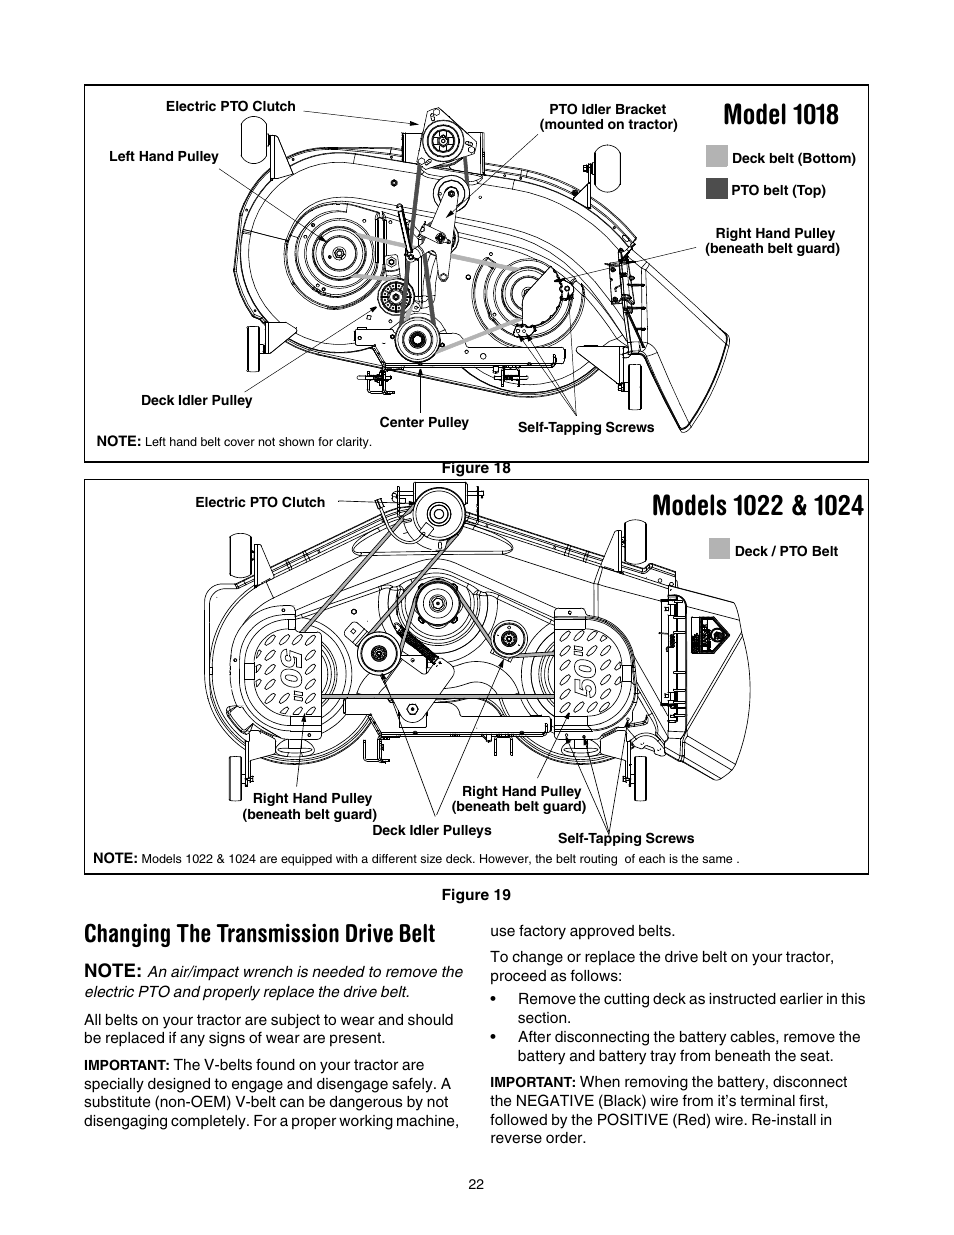 35 Cub Cadet Lt1018 Pto Belt Diagram Wiring Diagram